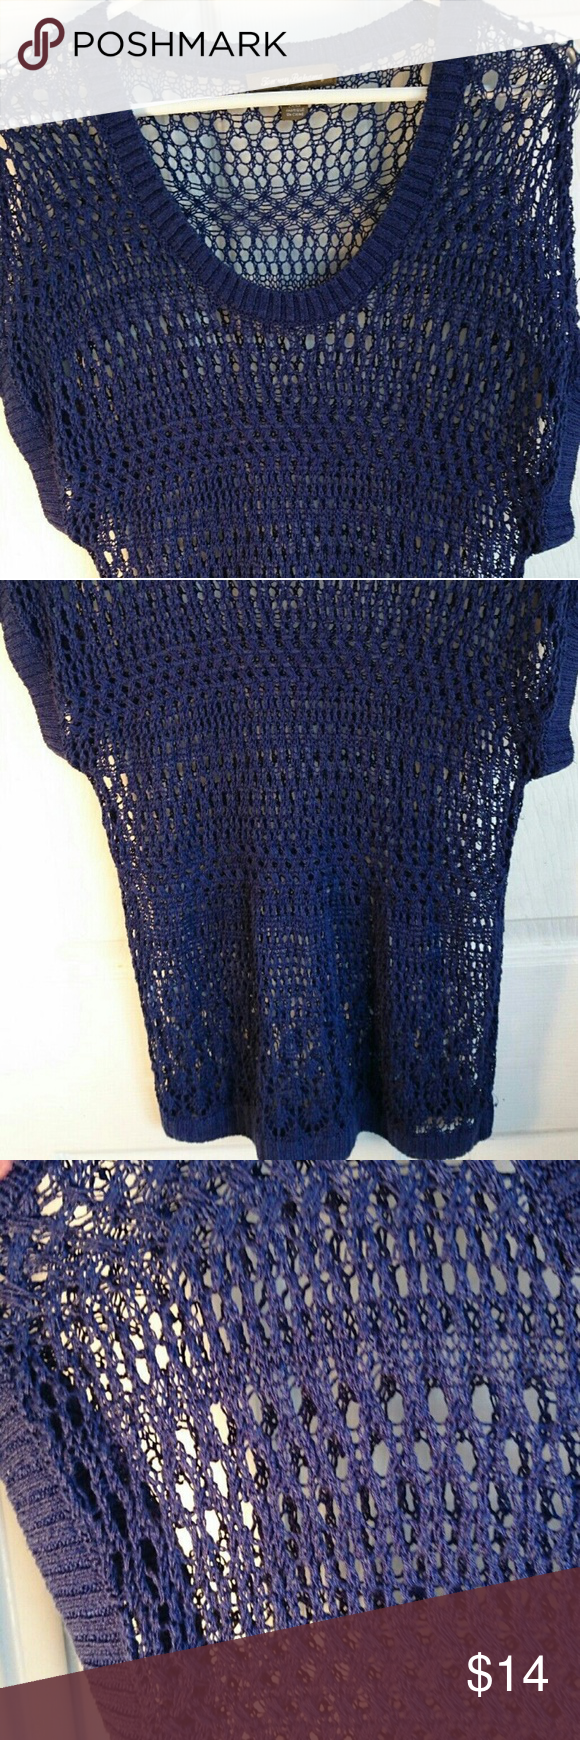 Fish Net Bathing Suit Cover Up This is a cute dark blue fish Net style bathing suit cover up which would also look good worn with a cami and a pair of shorts. It is in excellent condition with no rips, loose material, or stains. Tommy Bahama Swim Coverups